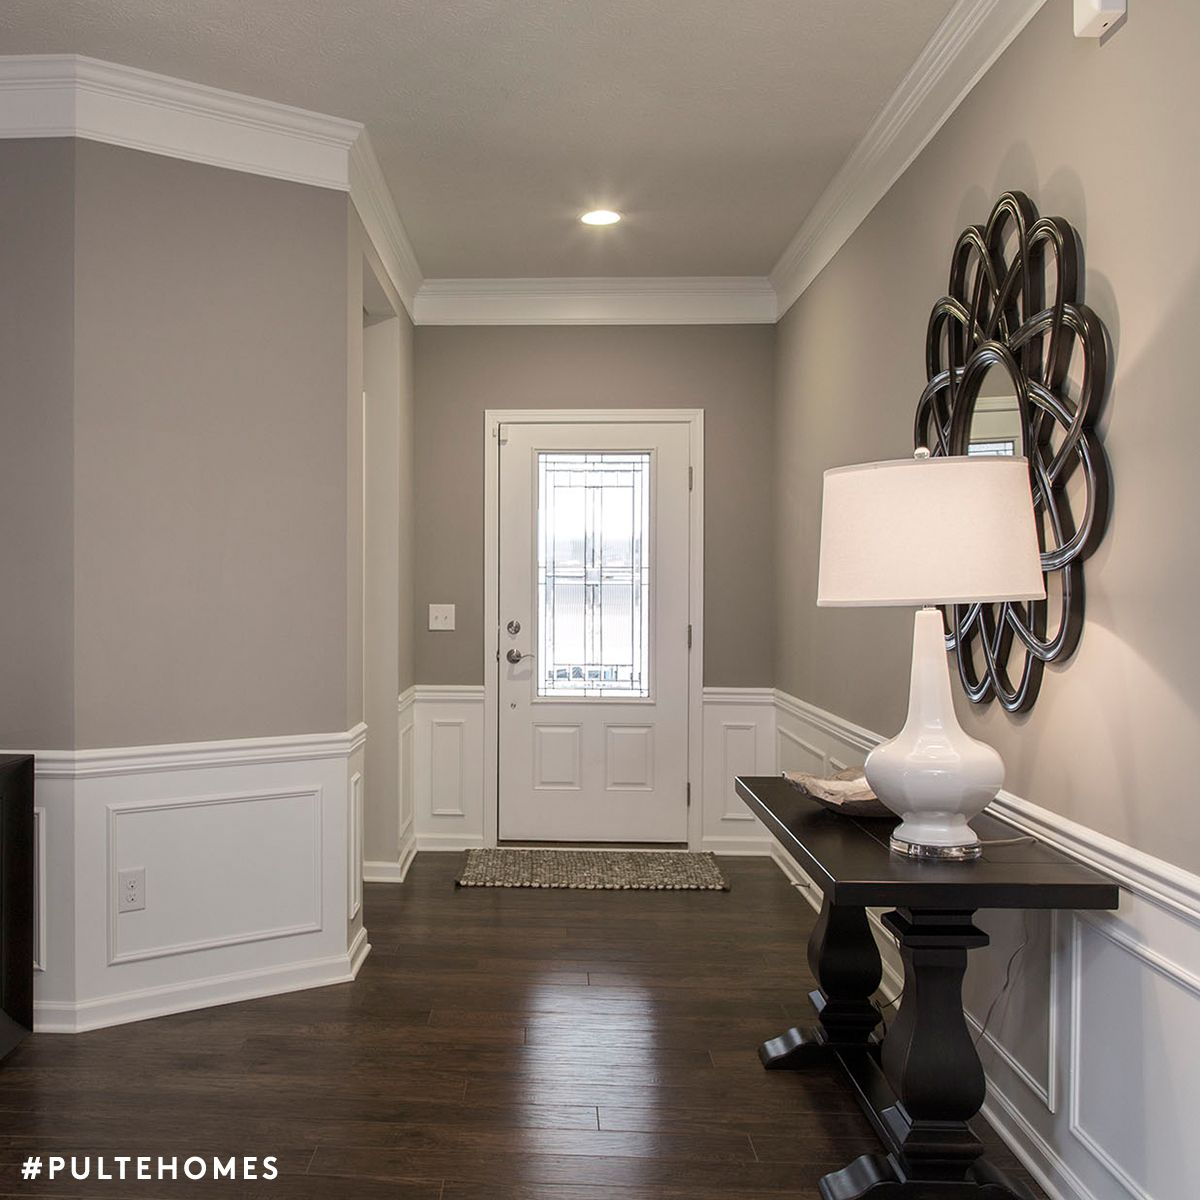 living room wall colors grey how to arrange furniture in a small with tv sherwin williams mindful gray color spotlight home ideas is